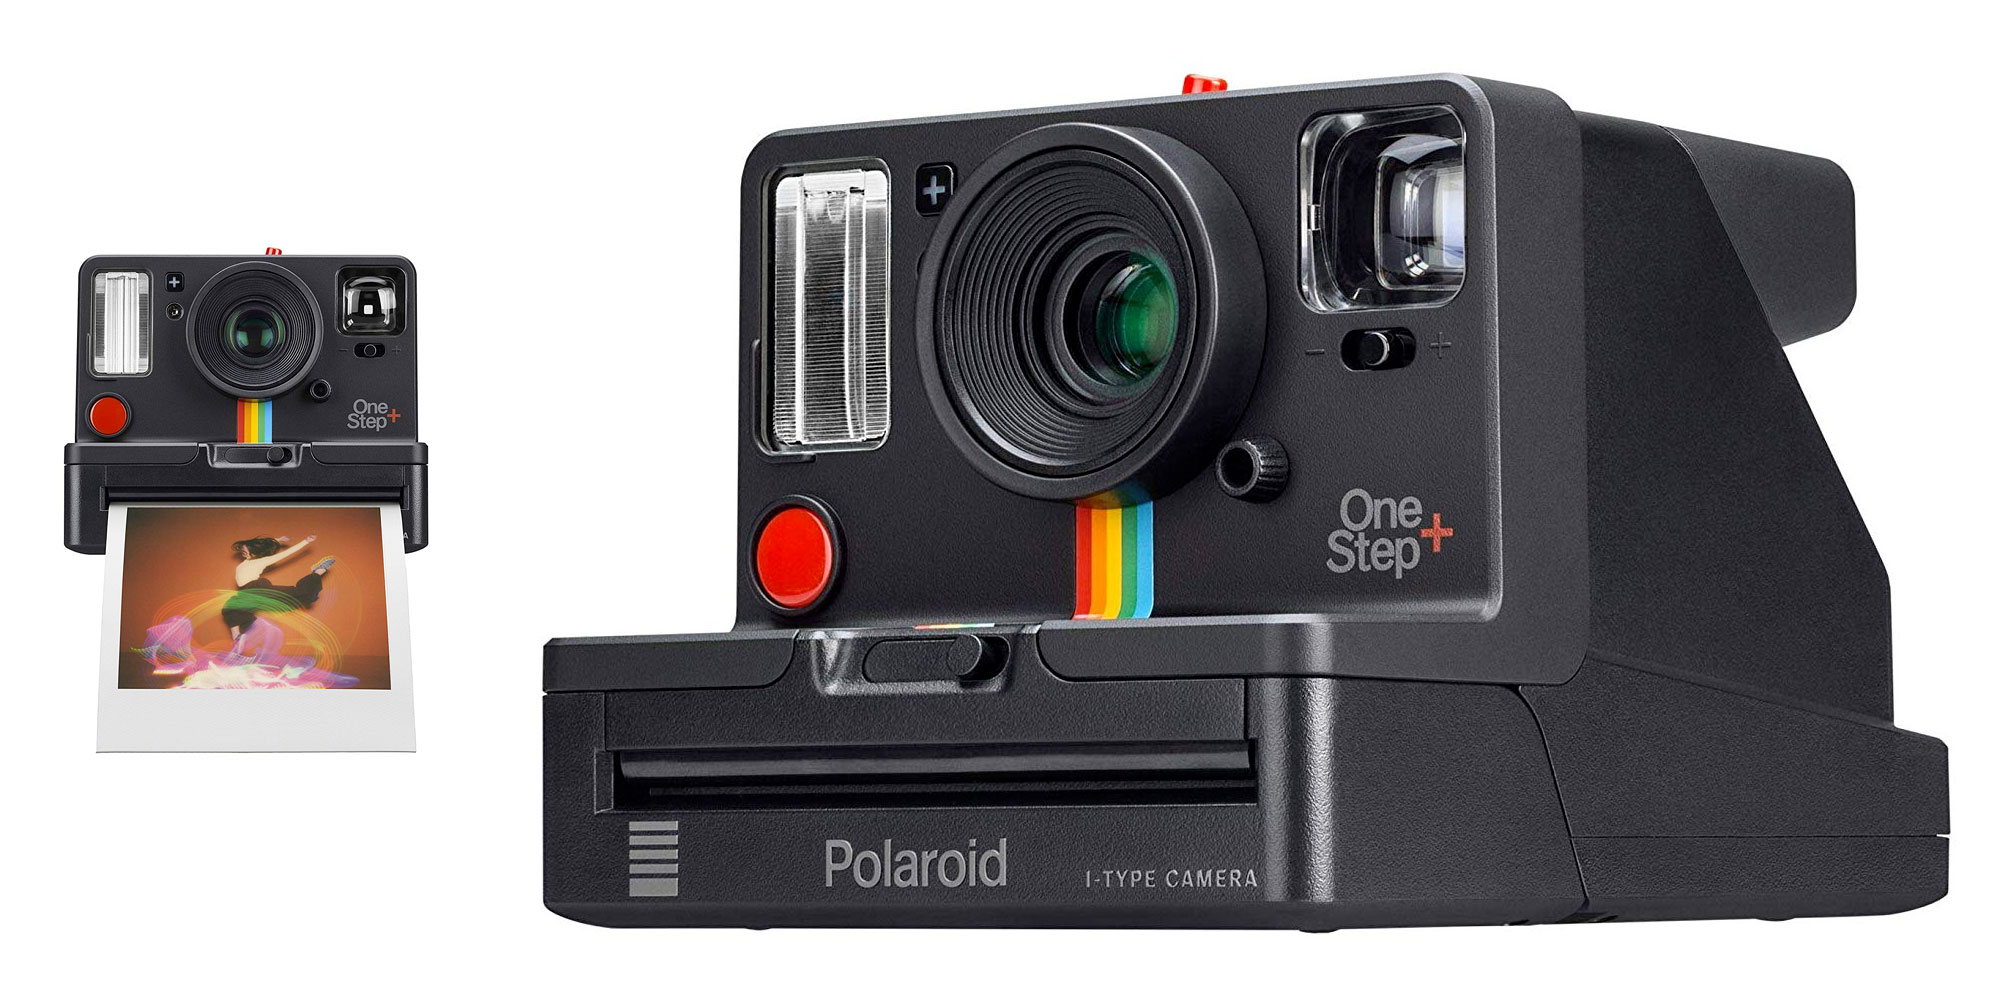 Step back in time w/ Polaroid's new Originals OneStep+ instant camera: $120 (Reg. $160)